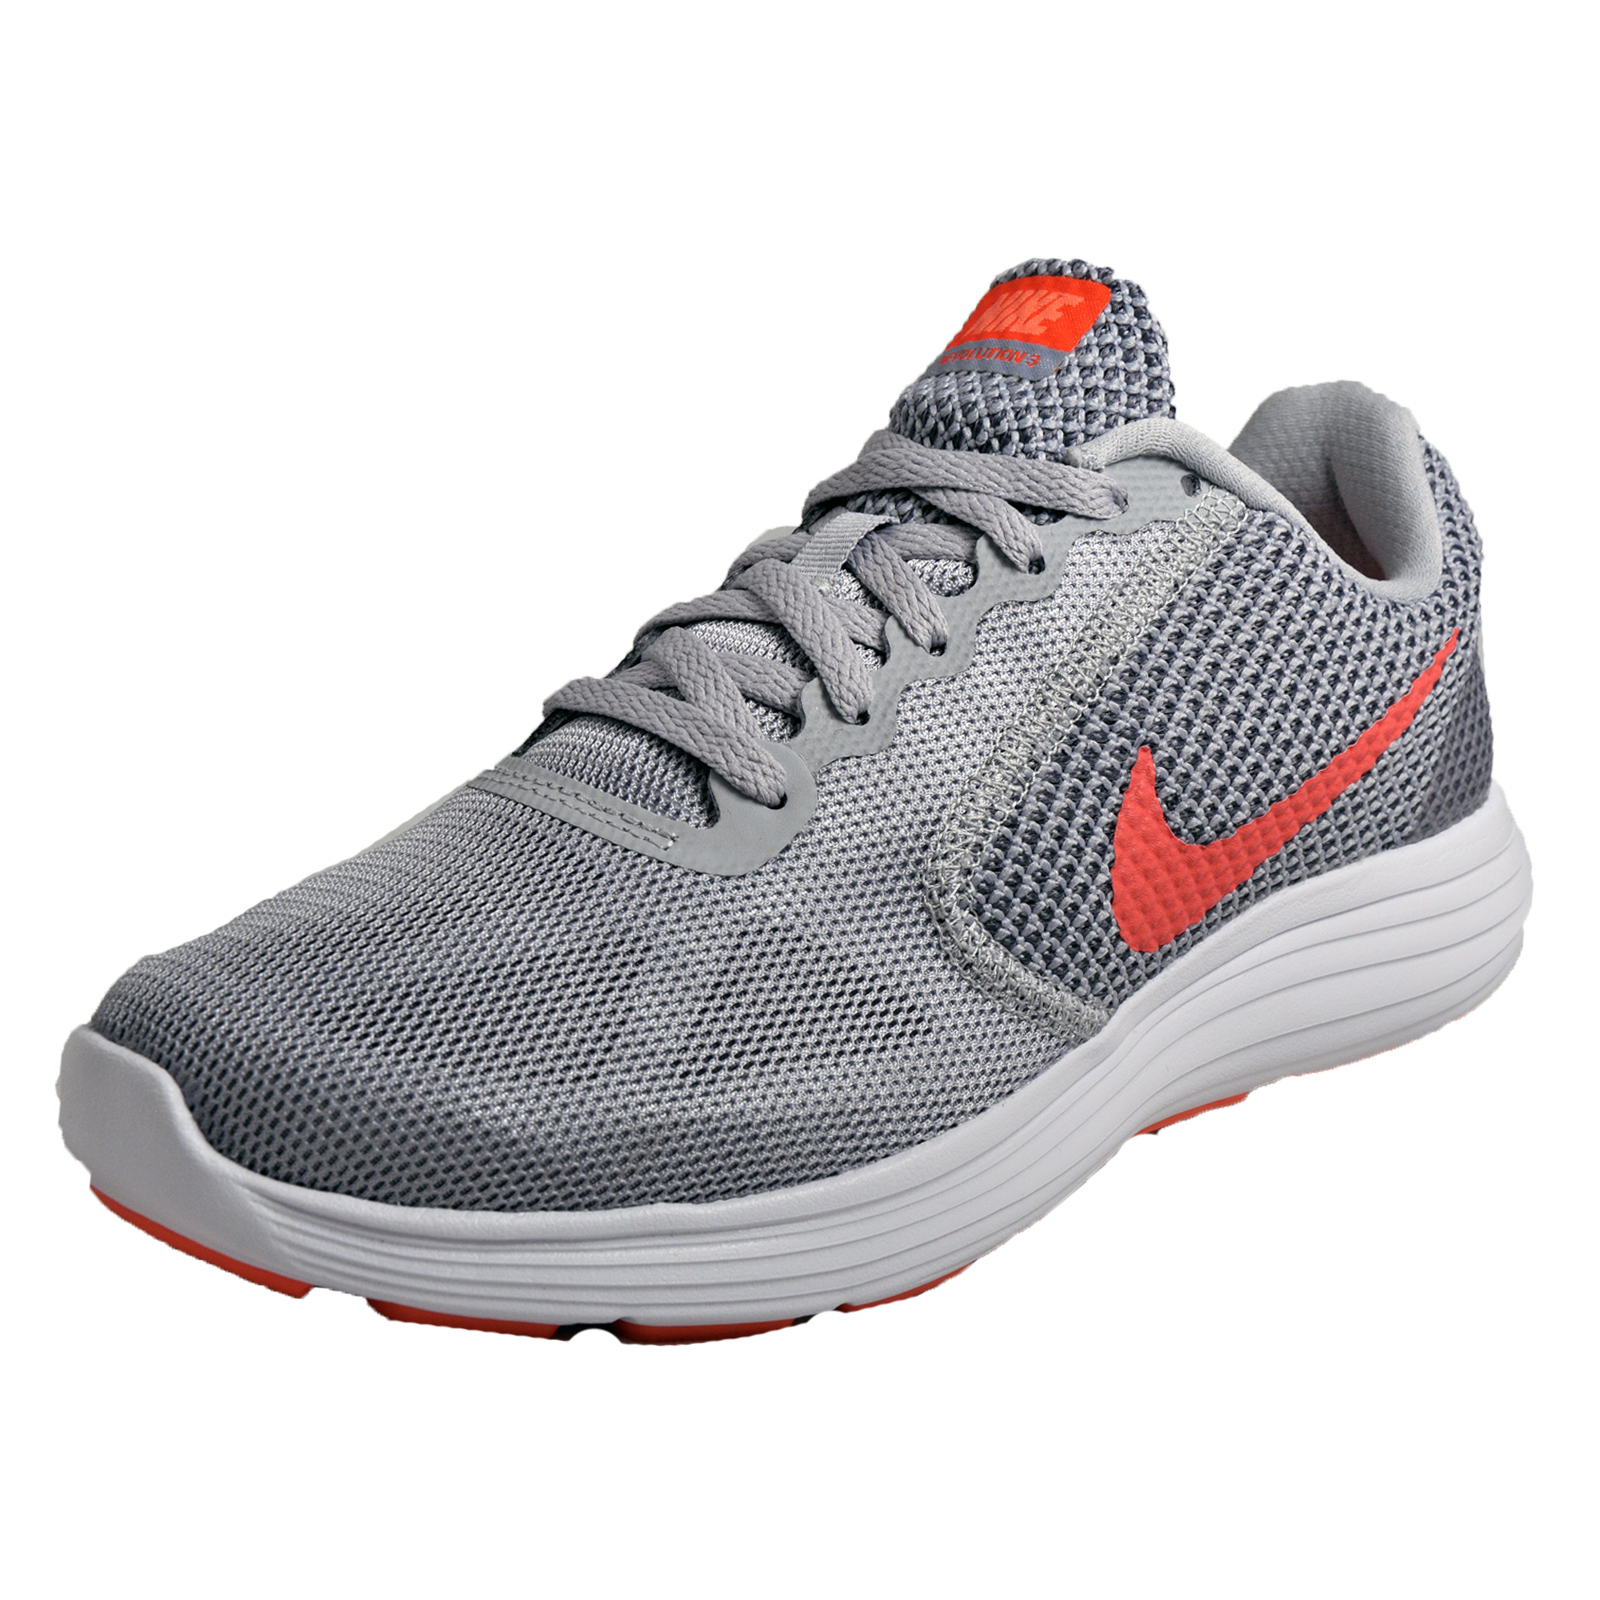 Details about Nike Revolution 3 Womens Running Shoes Fitness Gym Trainers  Grey 2d4c89b30d